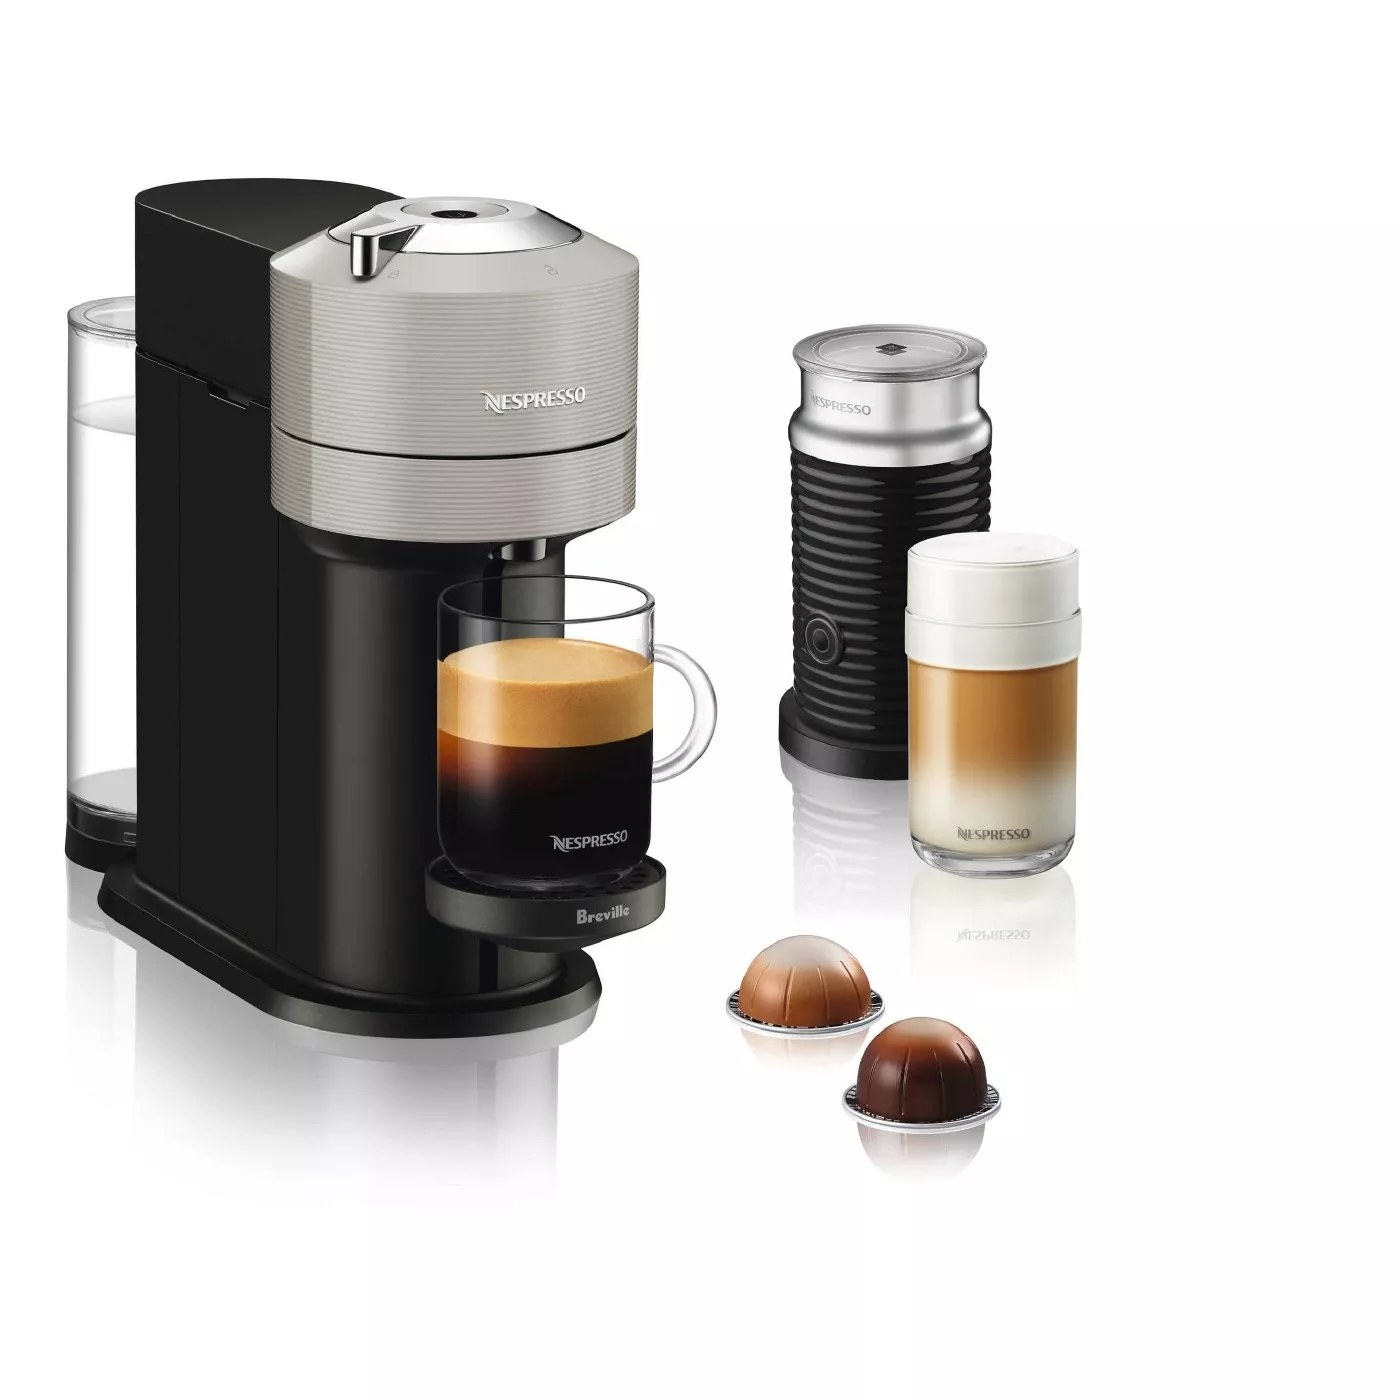 The Nespresso machine and the accompanying milk frother